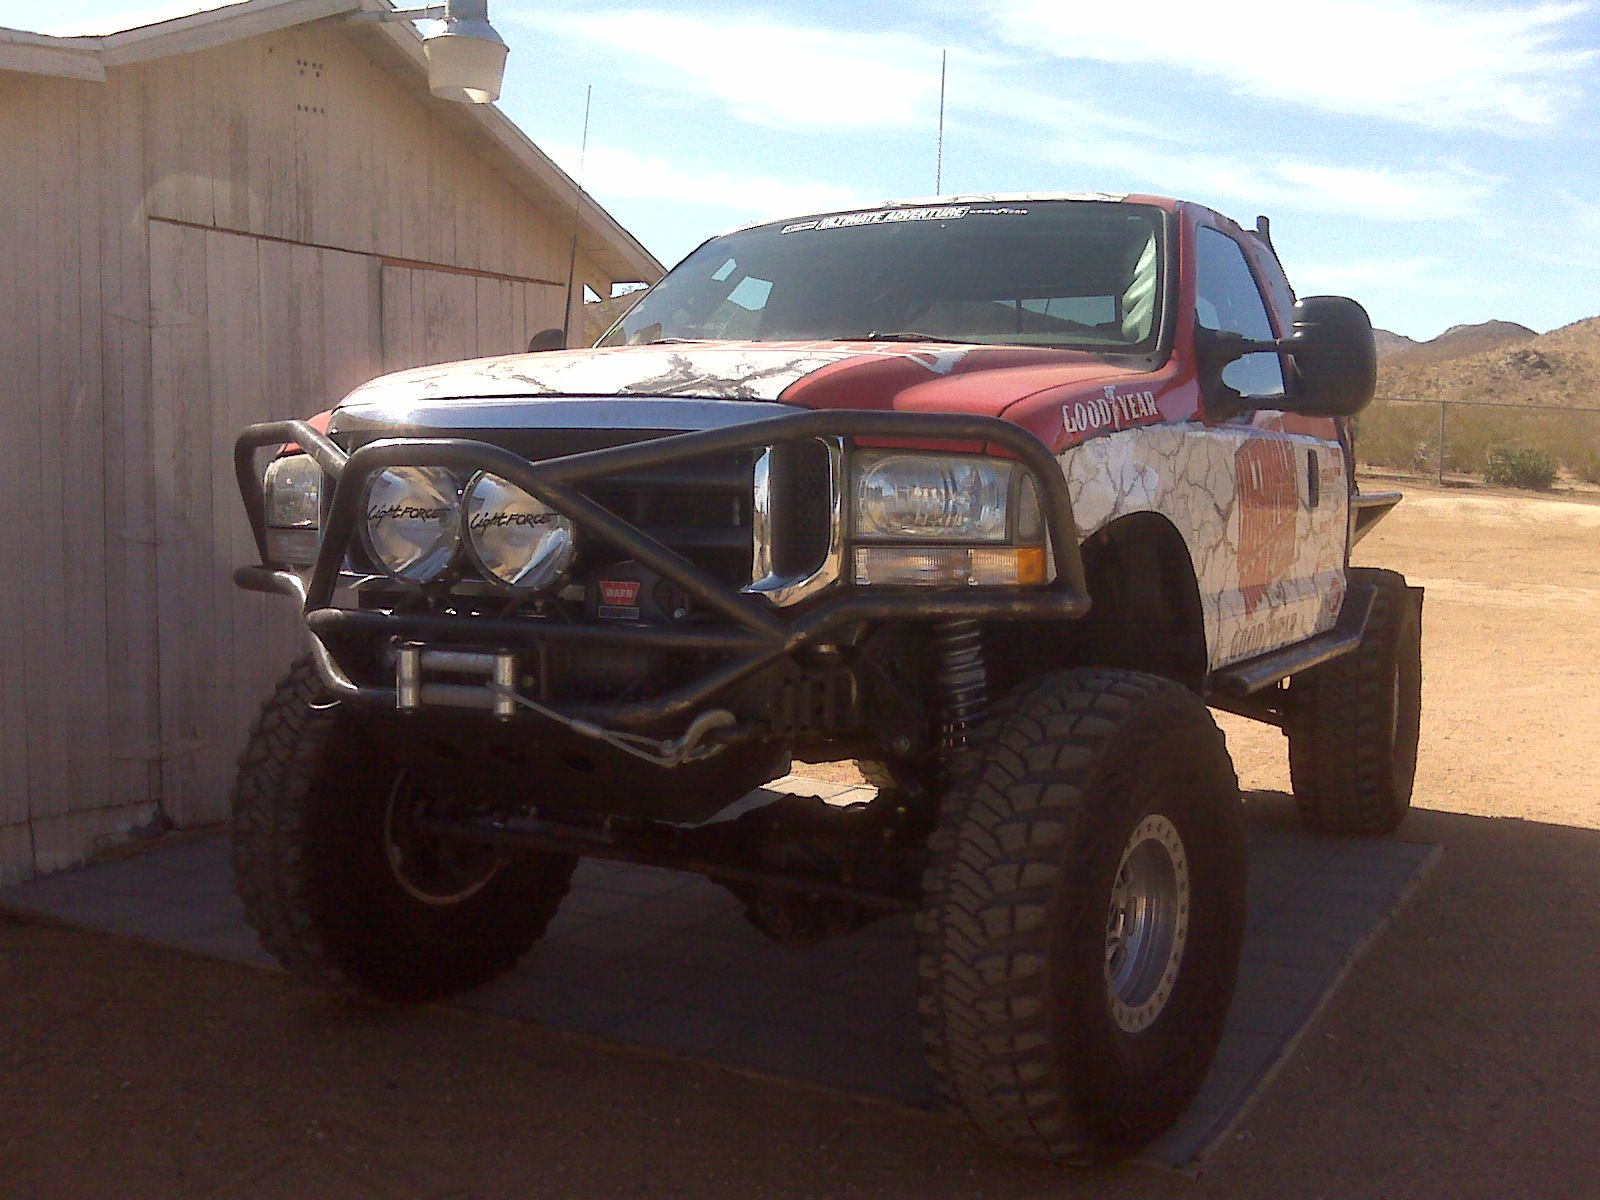 Ultimate Adventure truck  off road machine. 29 best Adventure truck images on Pinterest   4x4 trucks  Cars and